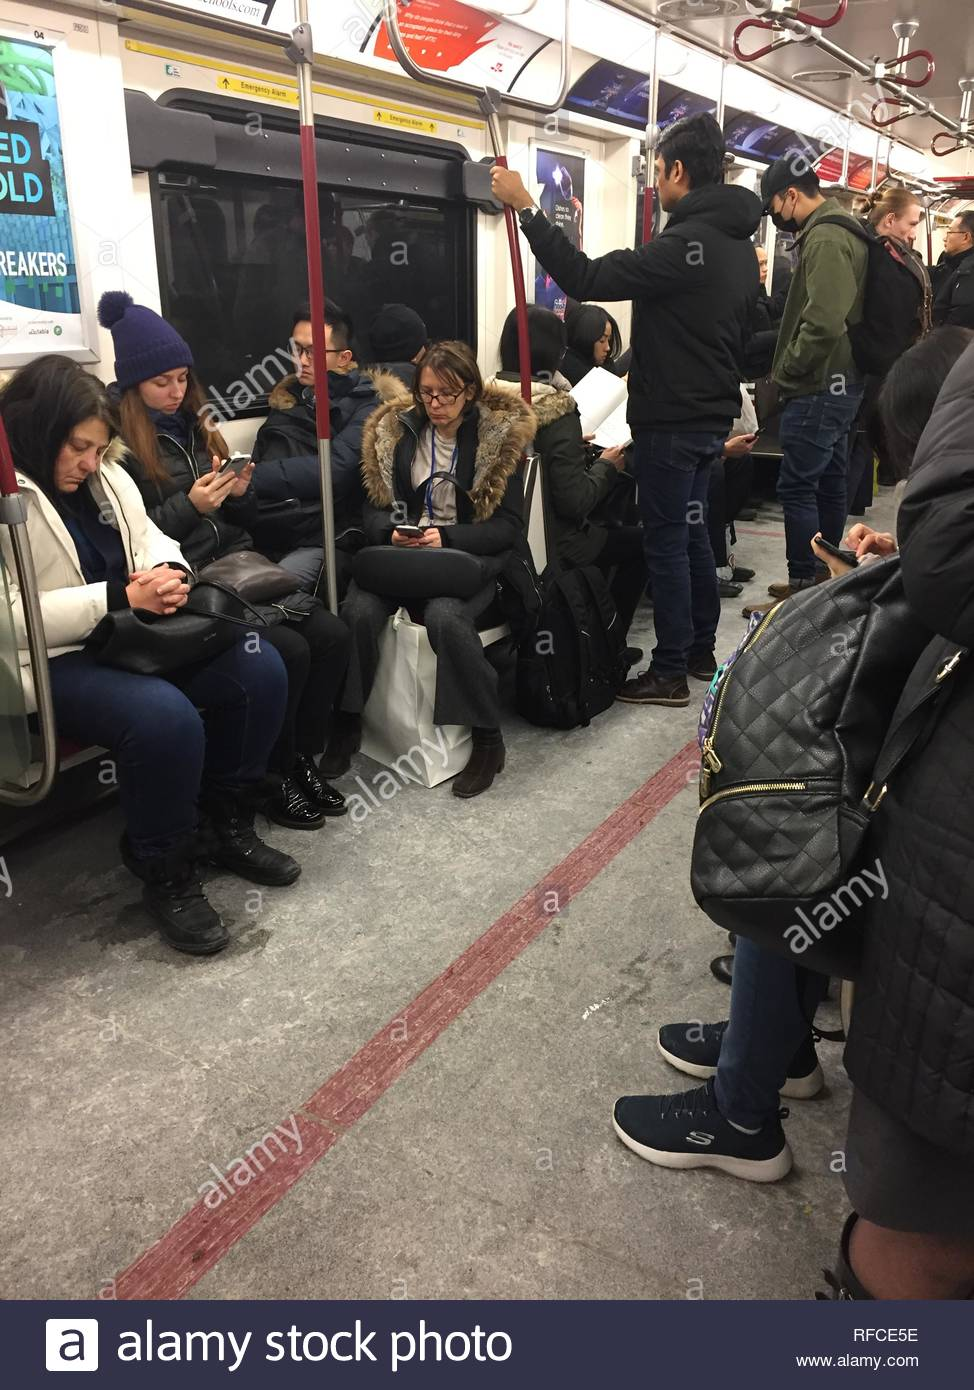 TTC subway car during the morning commute in Toronto, Ontario, Canada. - Stock Image